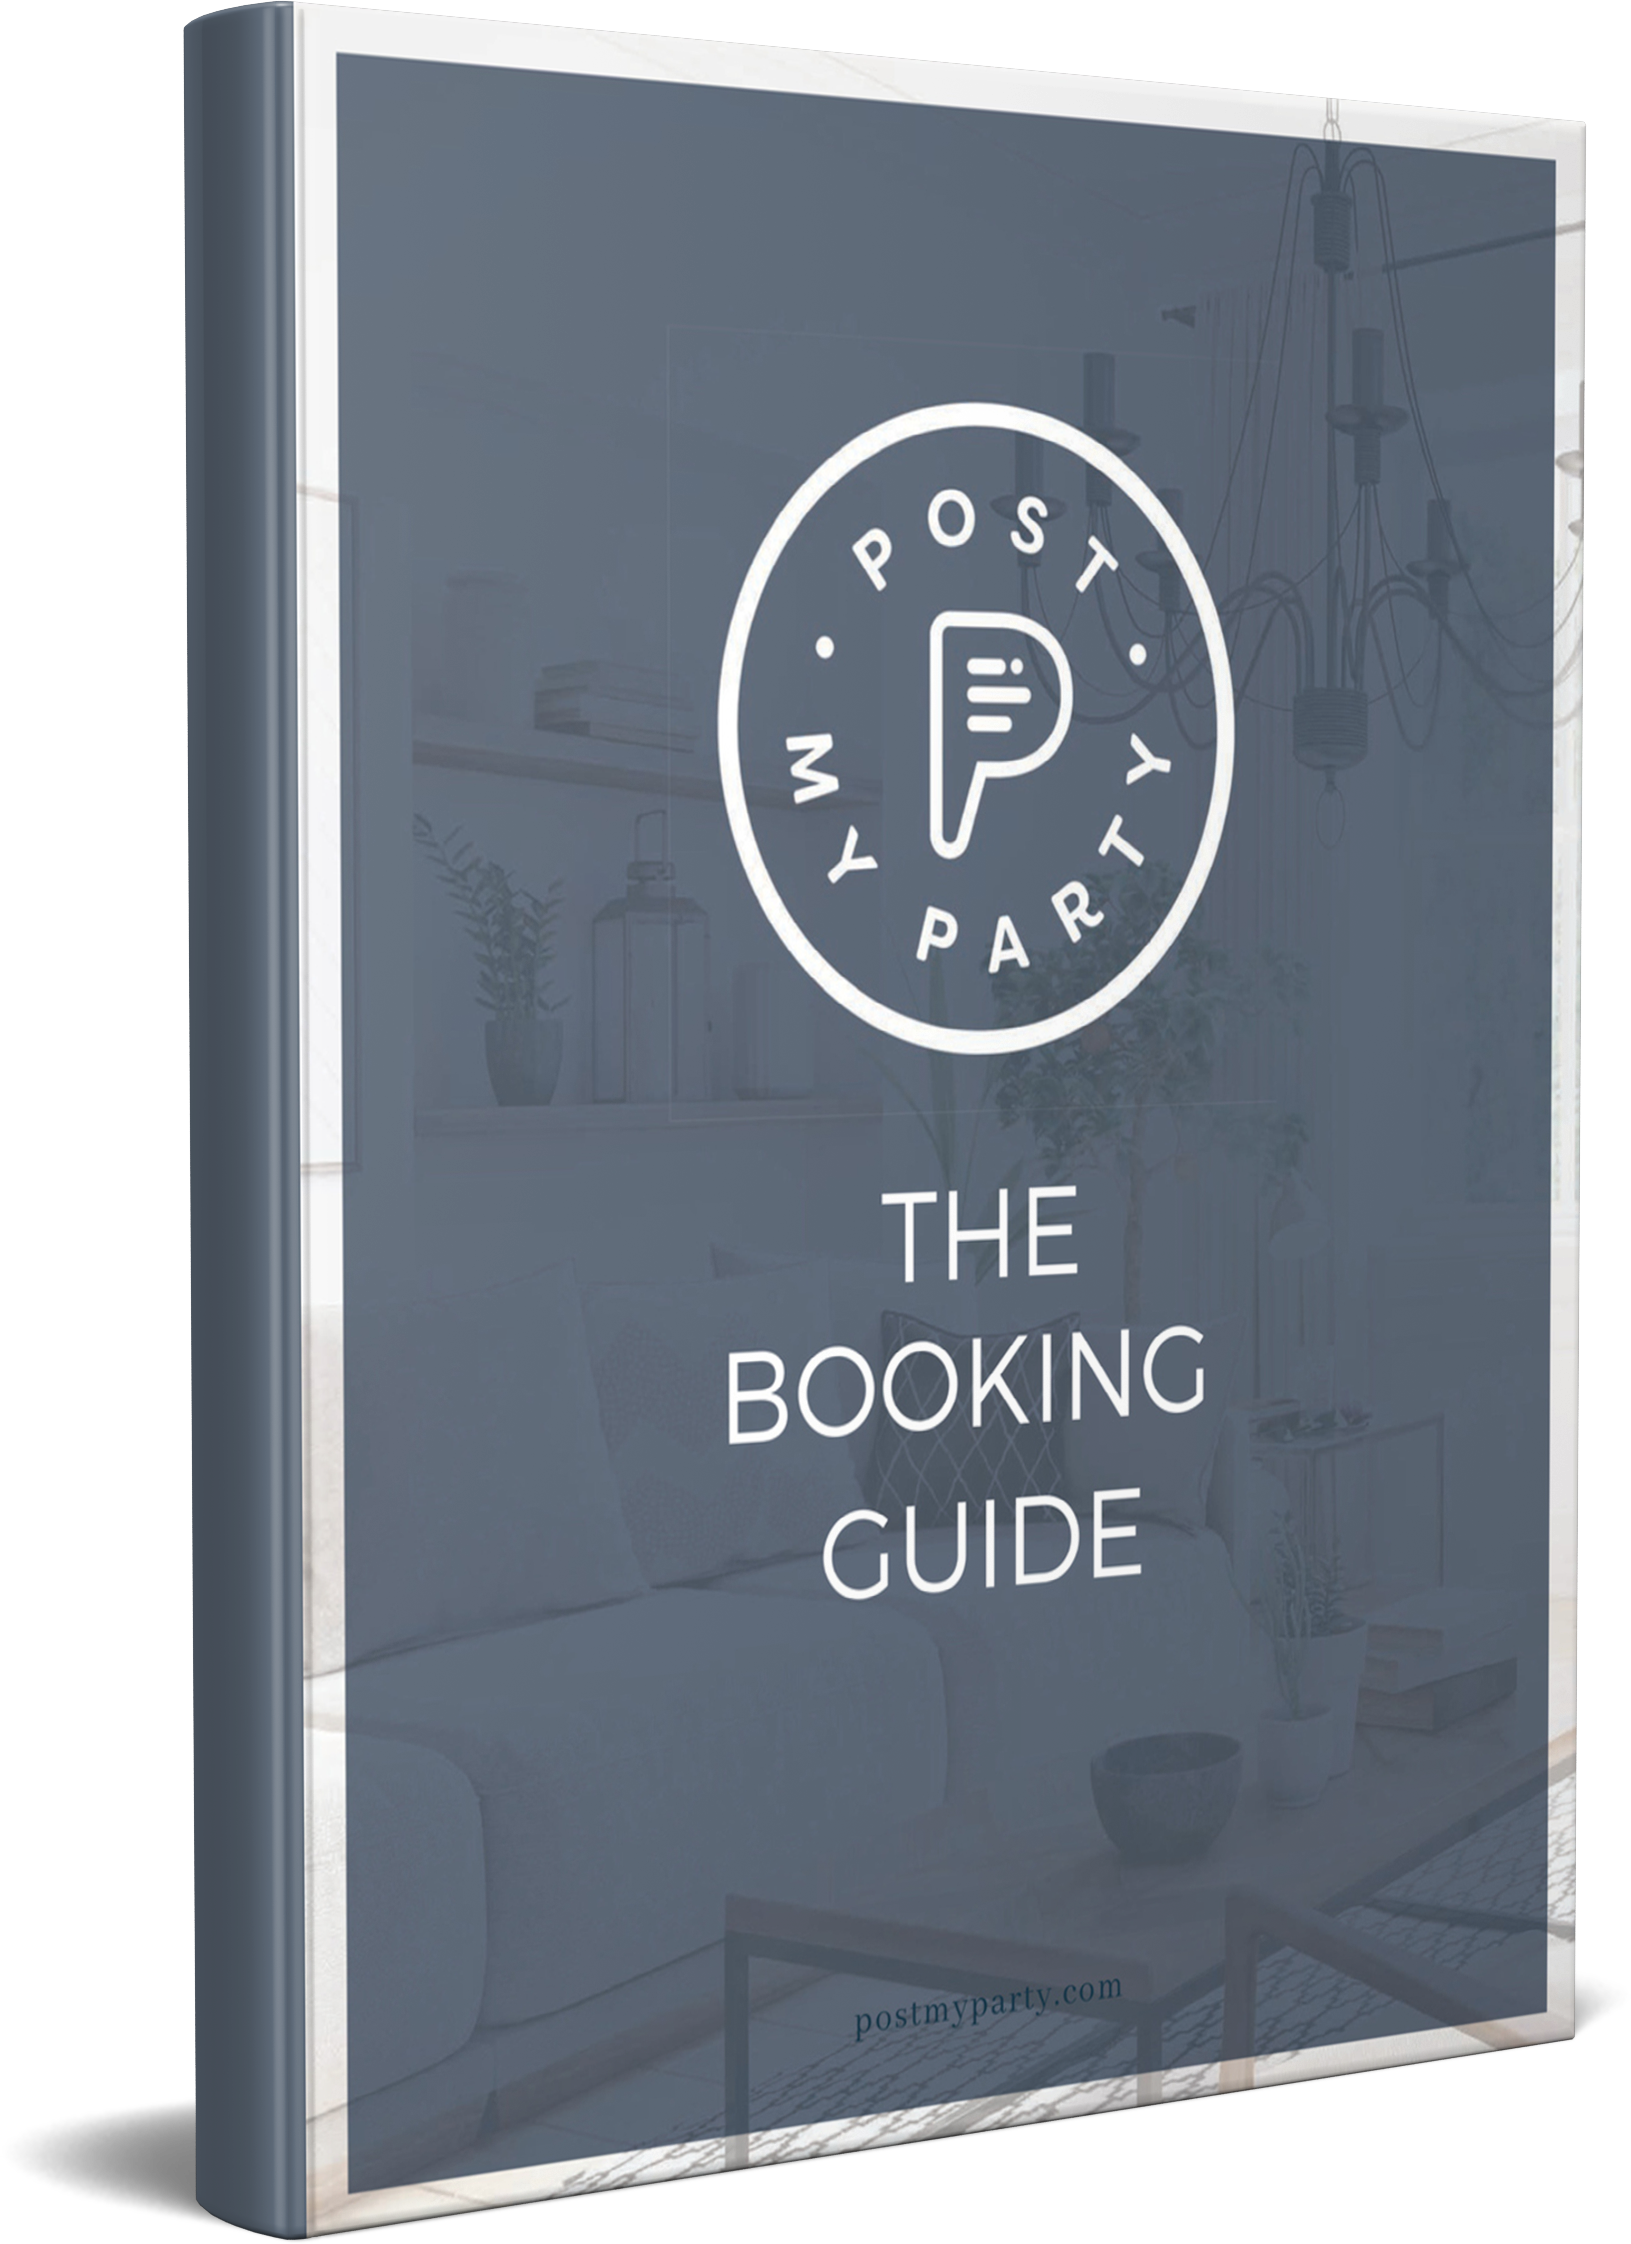 The Booking Guide